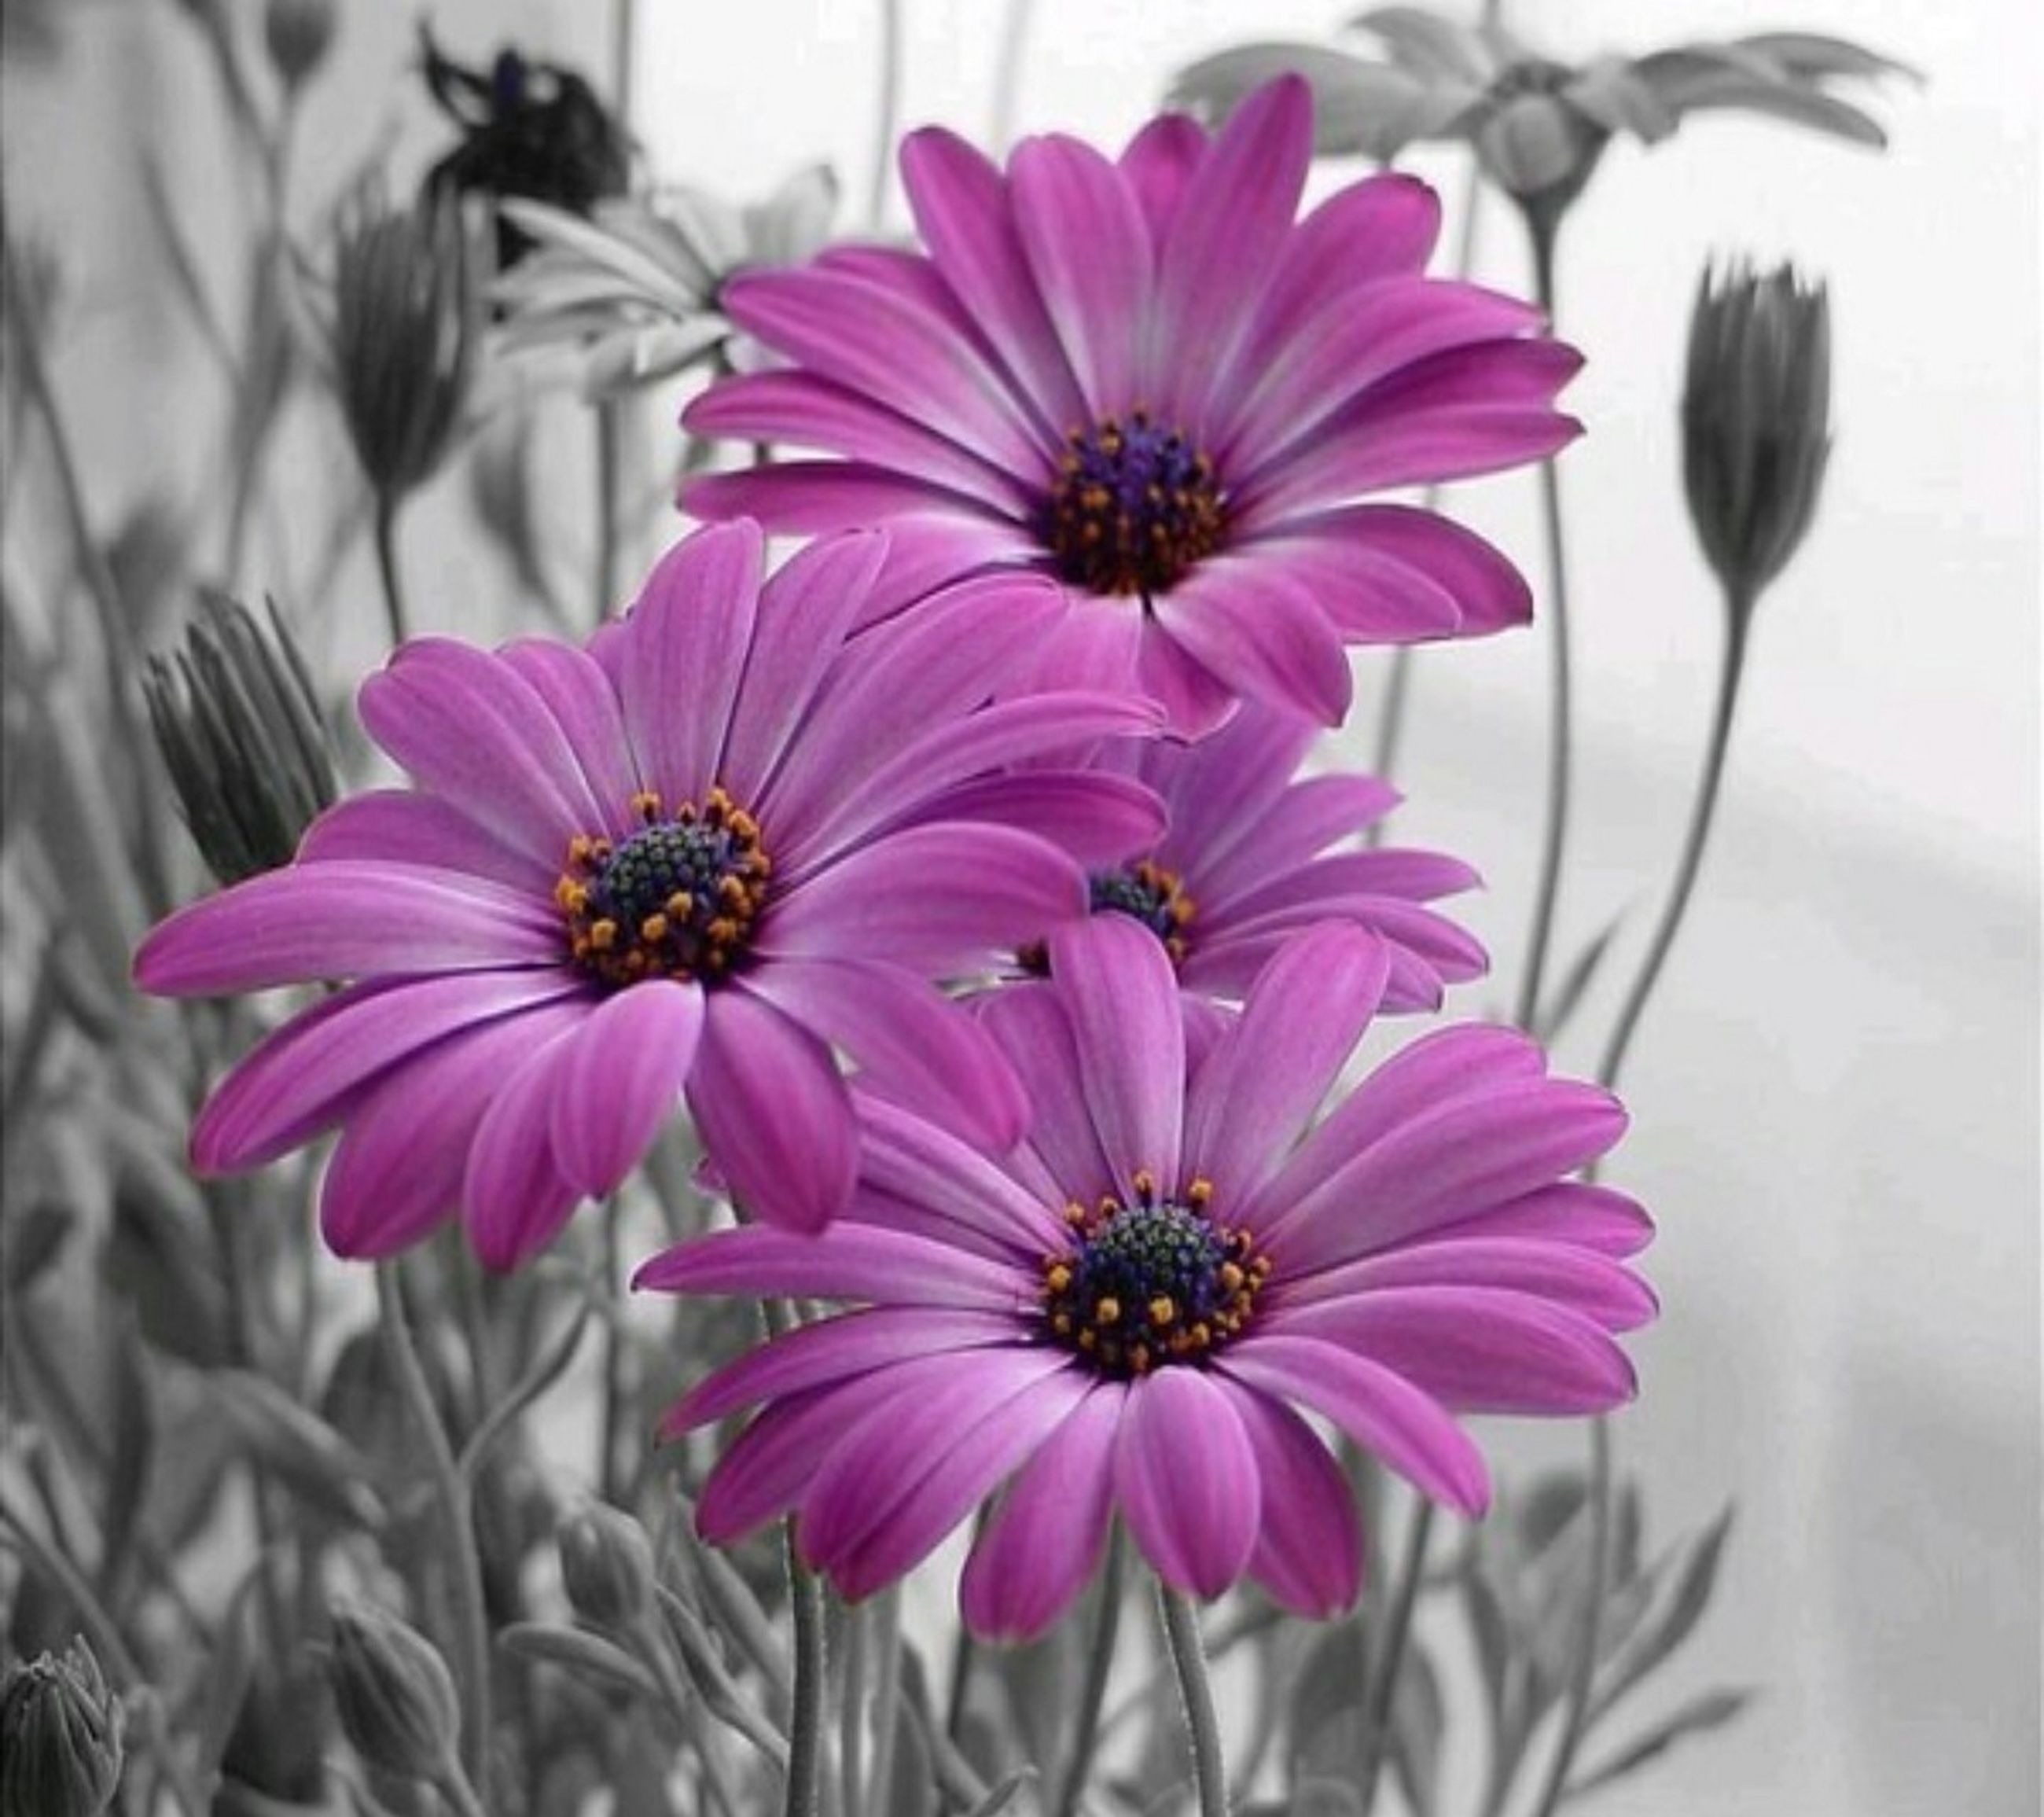 flower, freshness, petal, fragility, flower head, pink color, focus on foreground, close-up, beauty in nature, pollen, blooming, growth, nature, plant, indoors, purple, in bloom, day, no people, pink